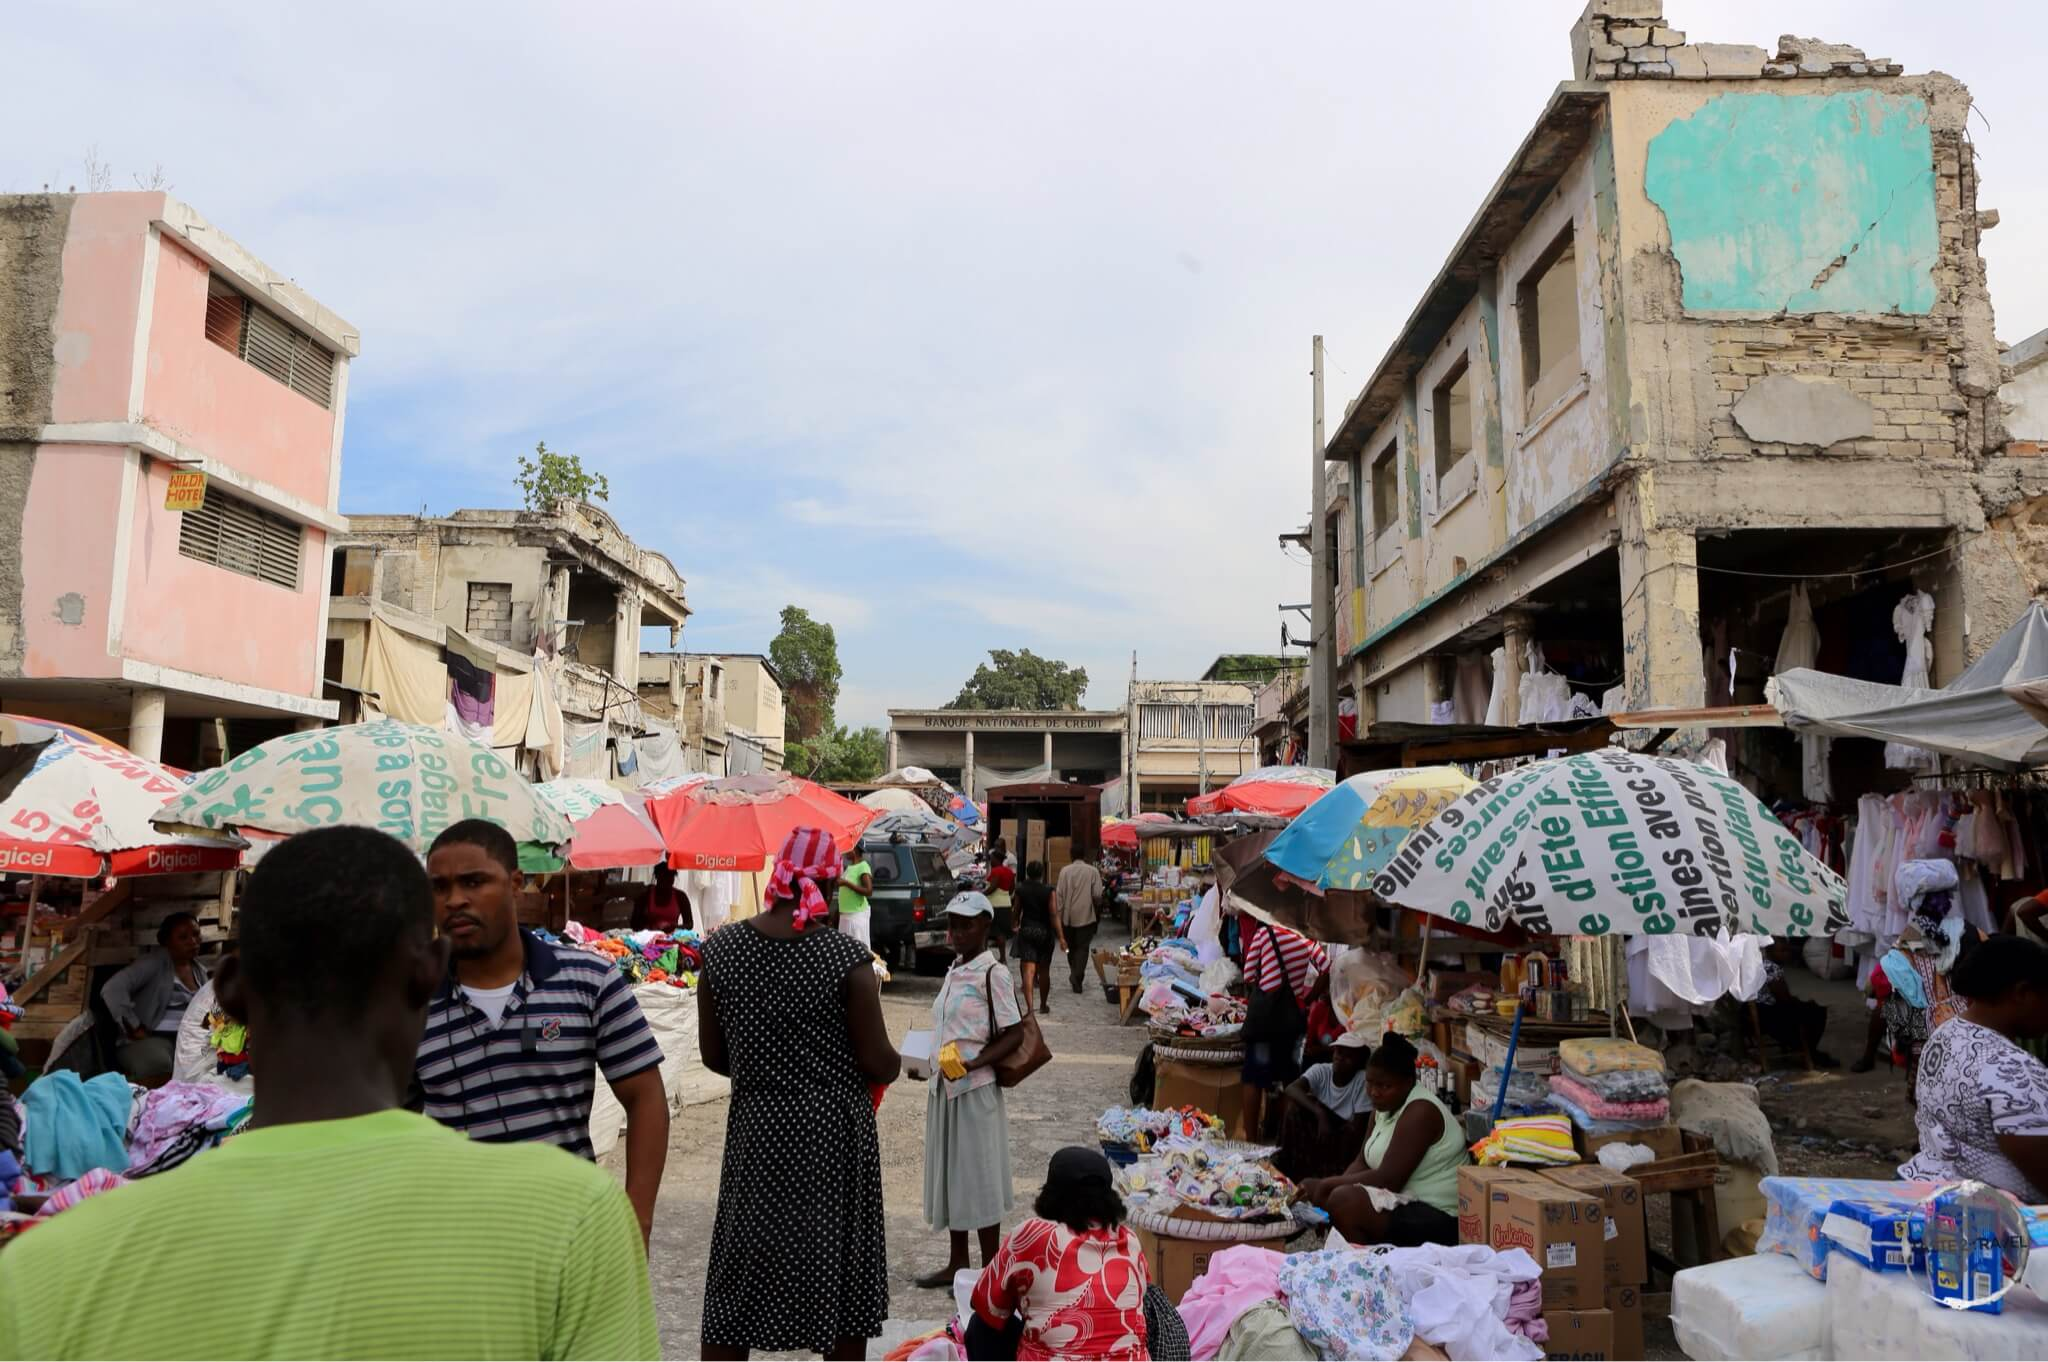 Typical street scene in downtown Port-au-Prince.